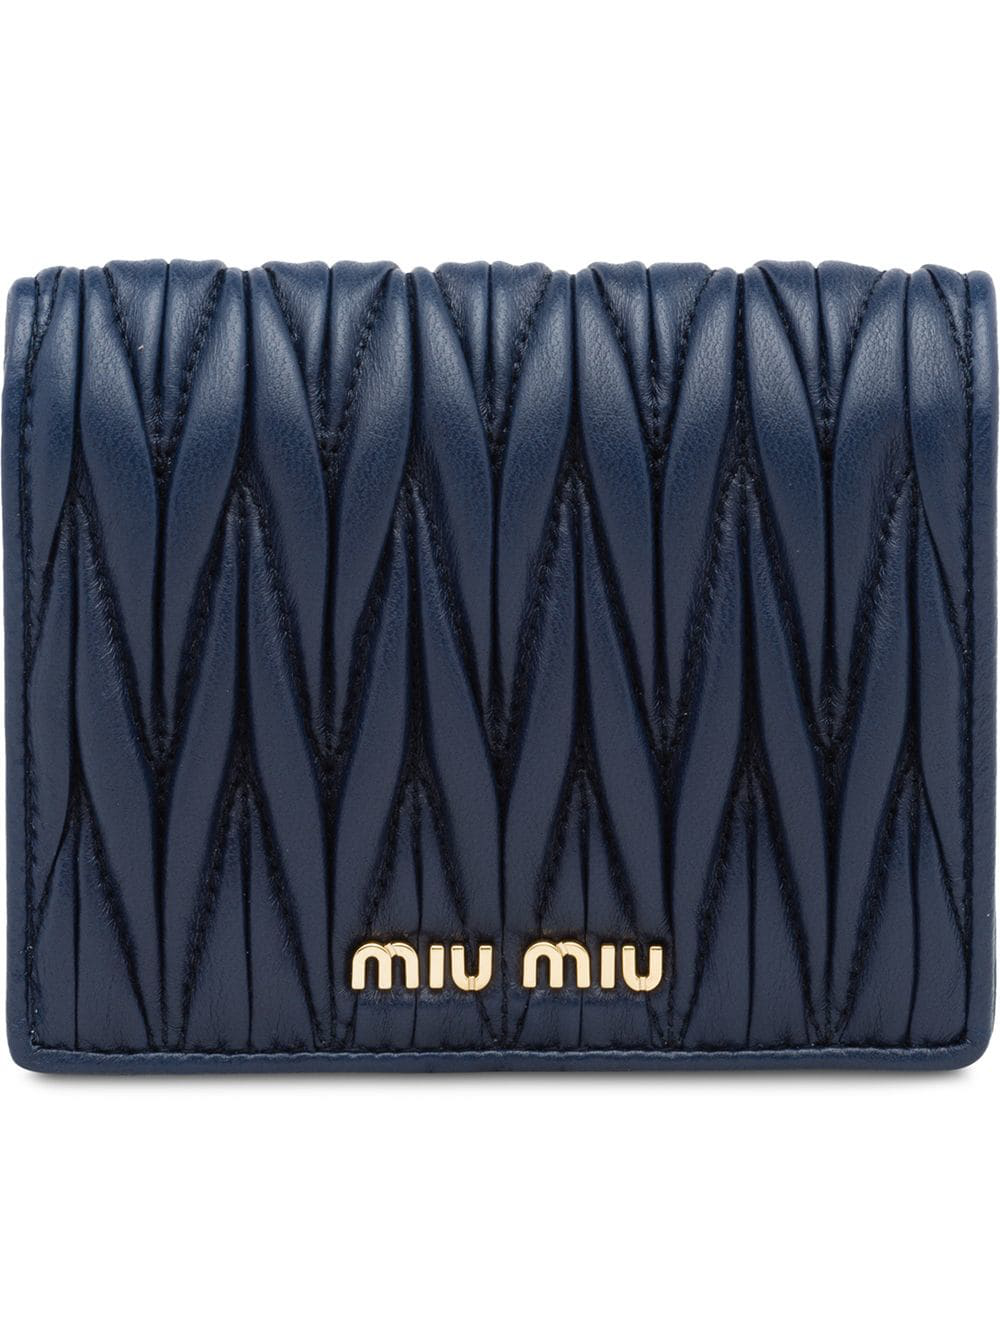 d67882866ca Miu Miu Matelassé Leather Wallet - Blue